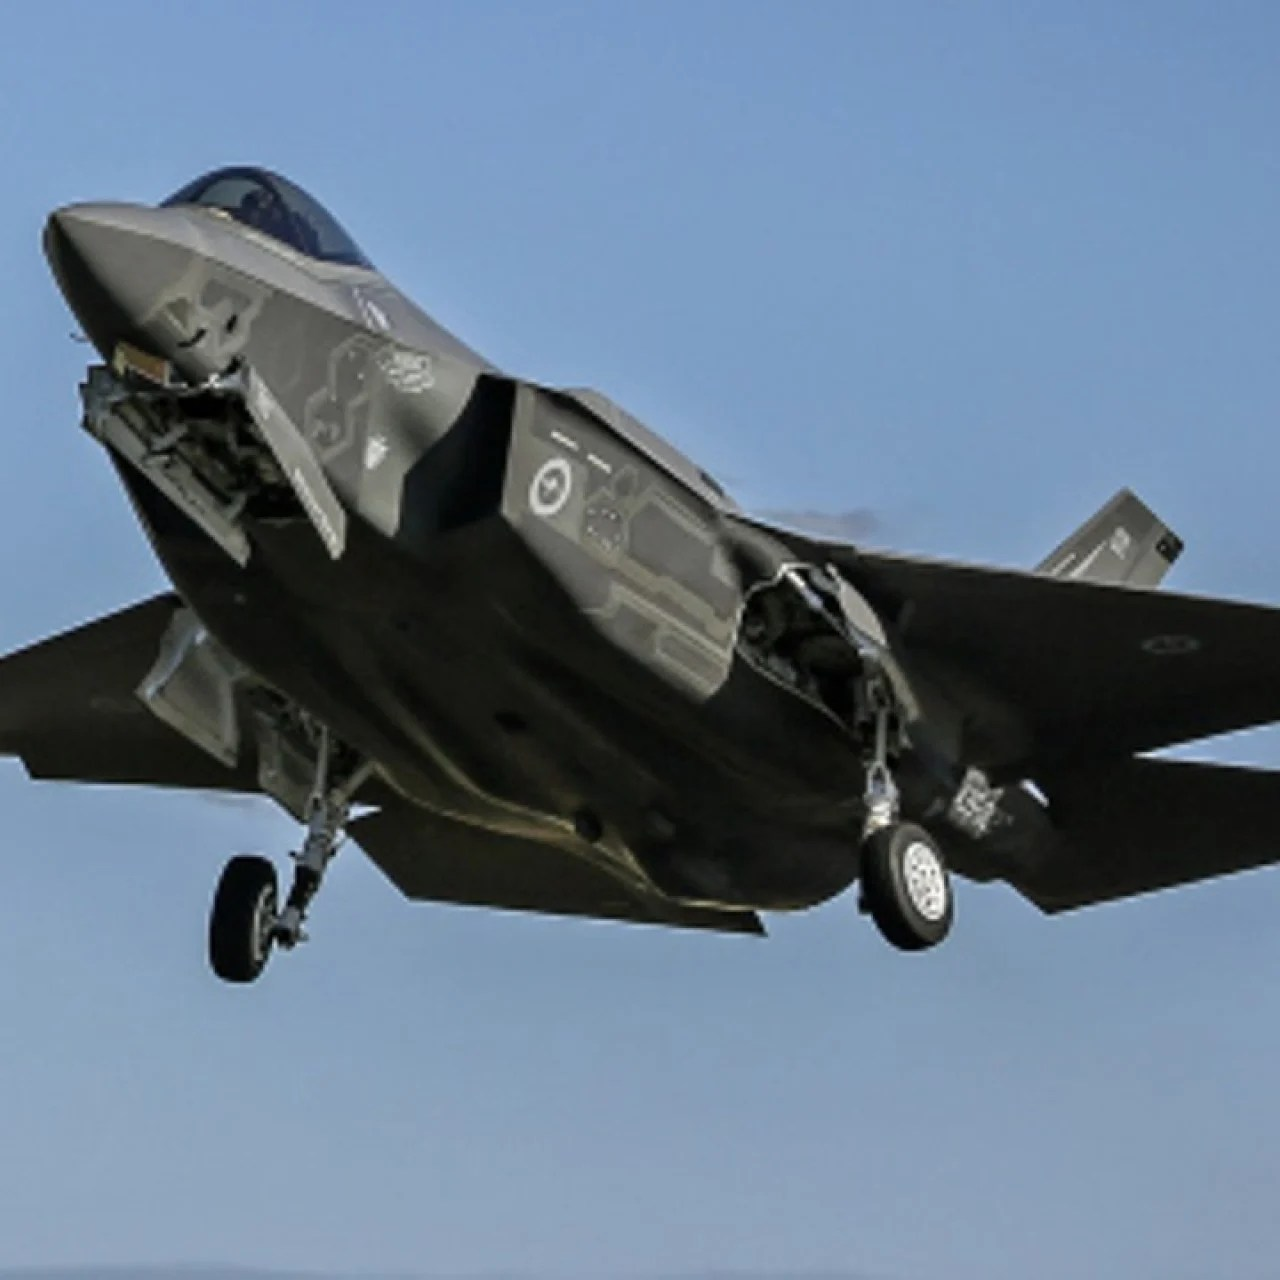 medium resolution of hackers use china chopper tool to steal australia f 35 stealth fighter data from defence firm south china morning post